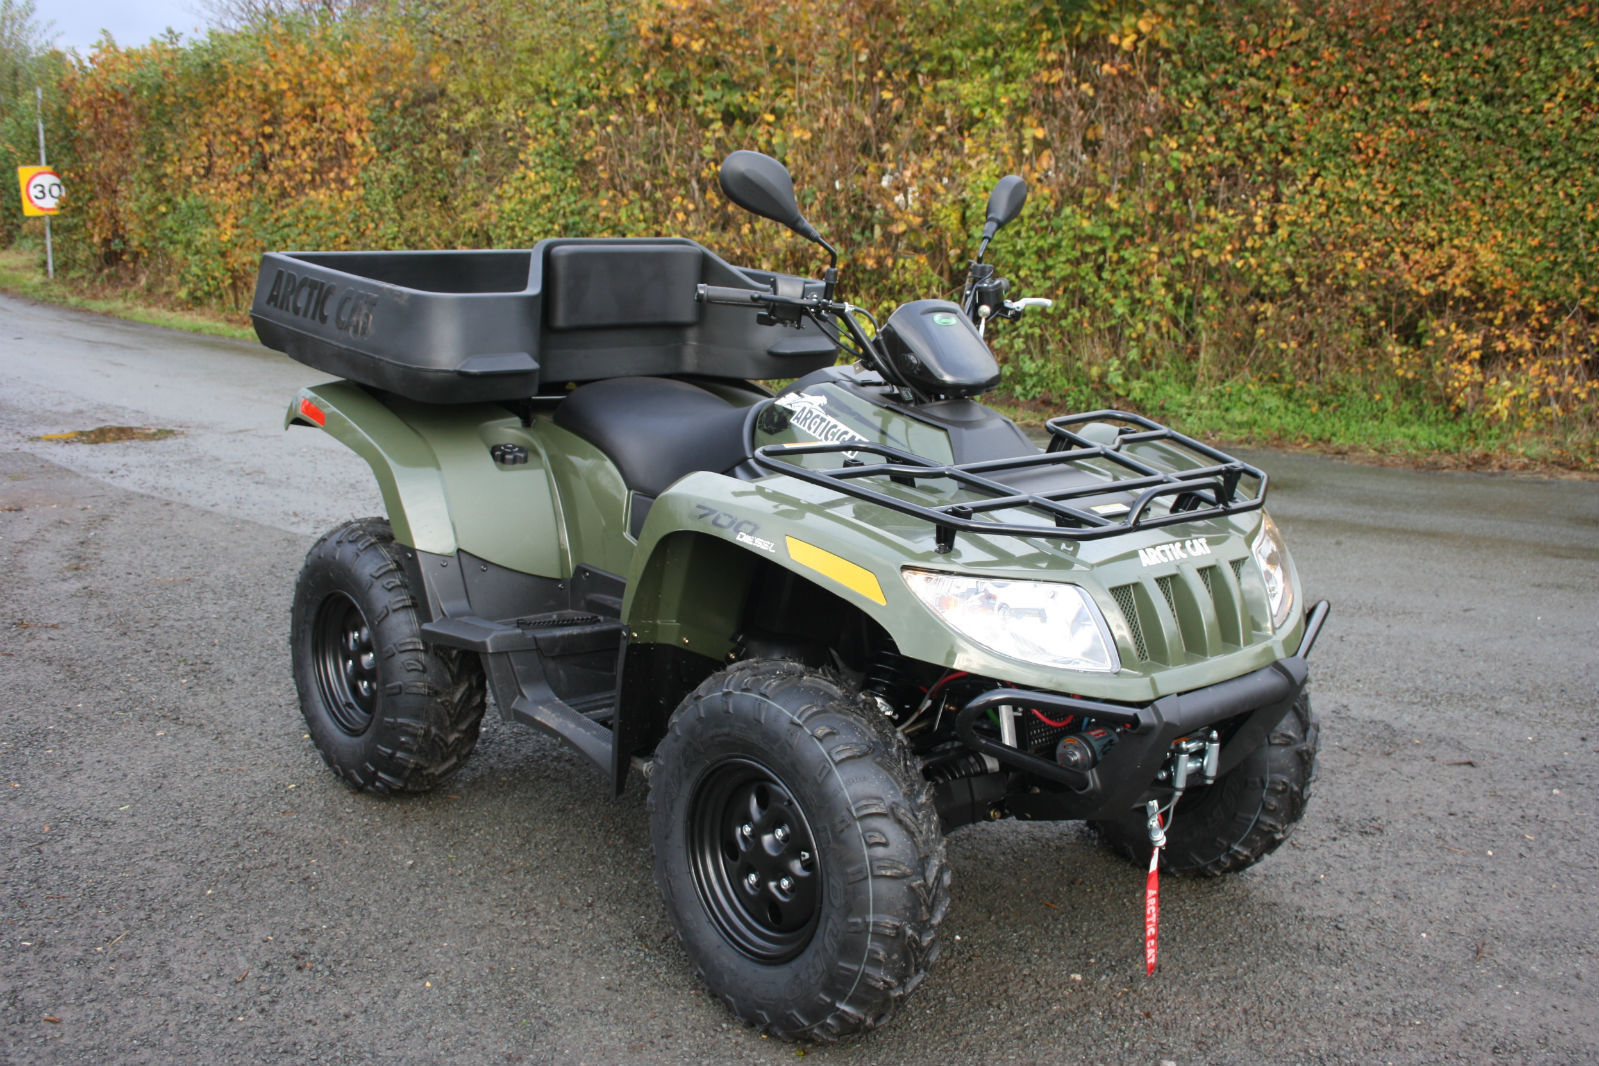 arctic cat 700 diesel 4x4 road legal atv farm quad with cargo box. Black Bedroom Furniture Sets. Home Design Ideas